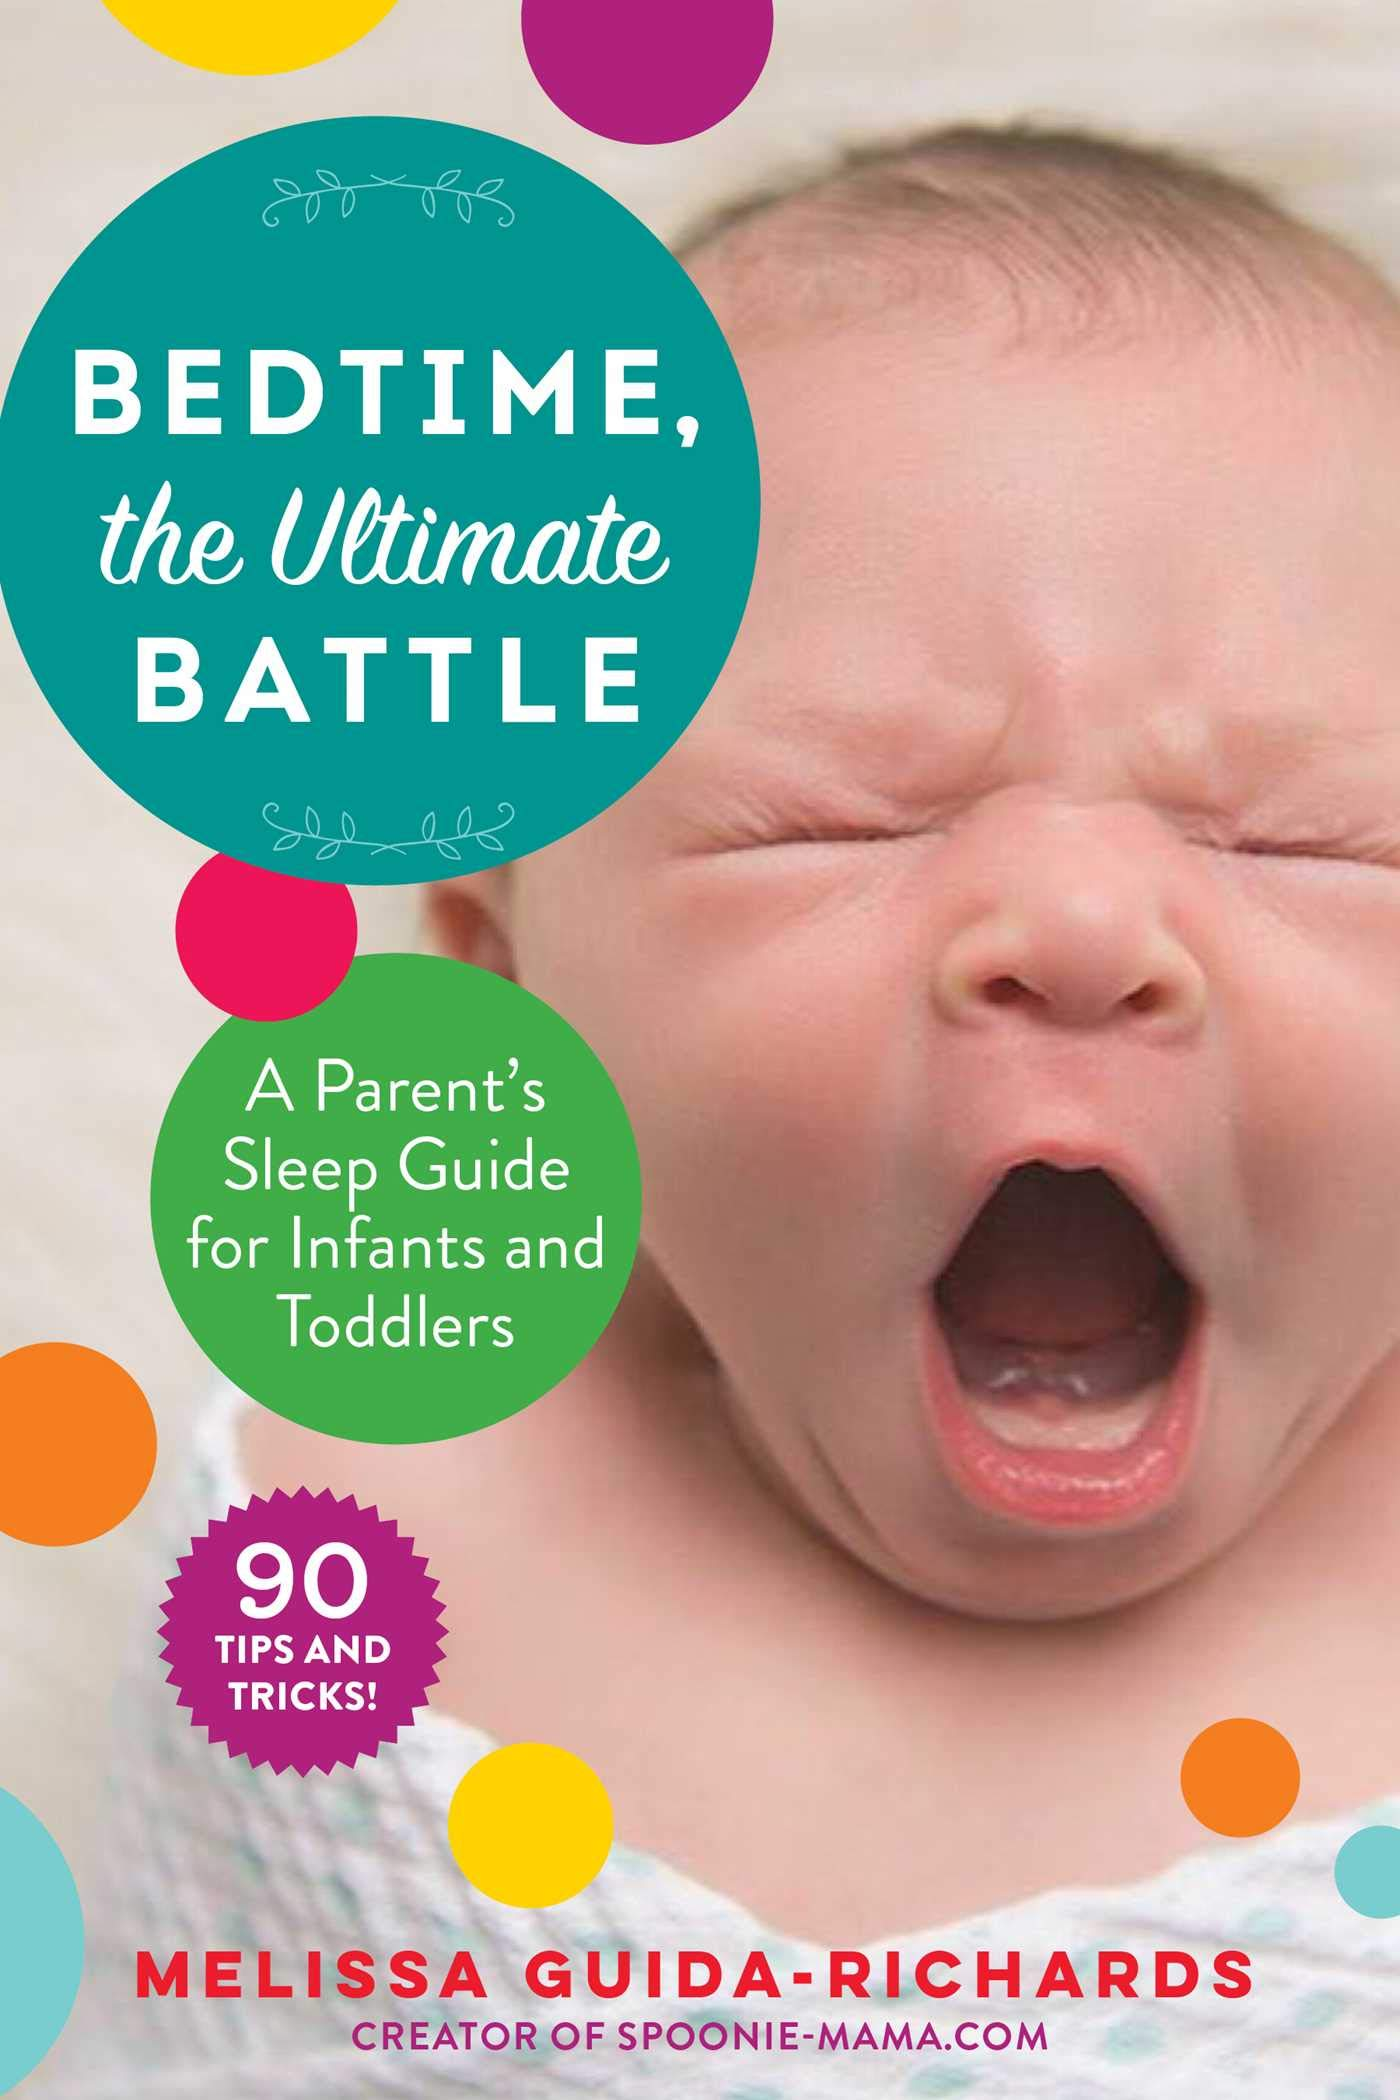 Bedtime The Ultimate Battle A Parent S Sleep Guide For Infants And Toddlers Guida Richards Melissa 9781510745186 Amazon Com Books